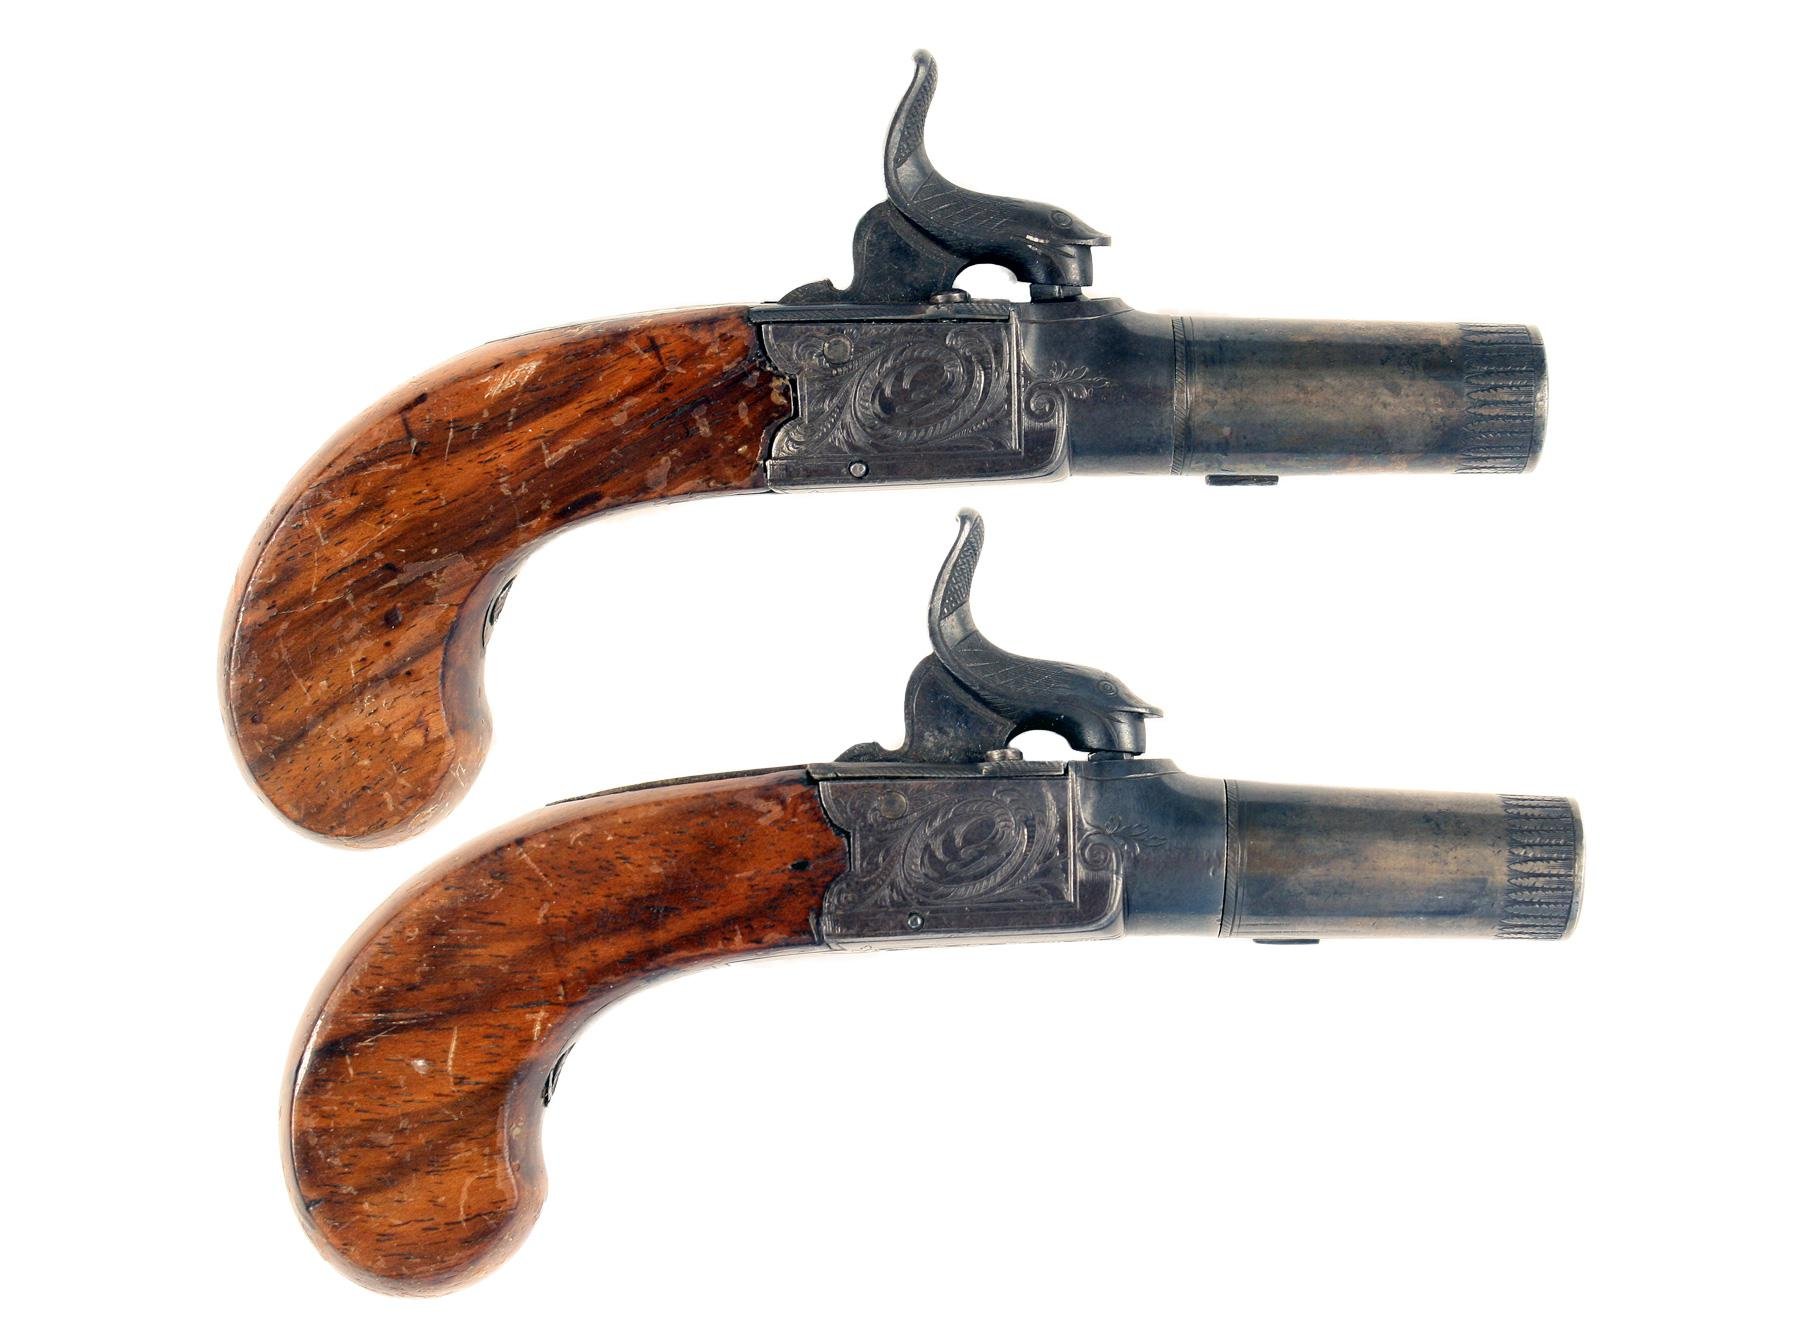 A Pair of Pocket Pistols by Westley Richards